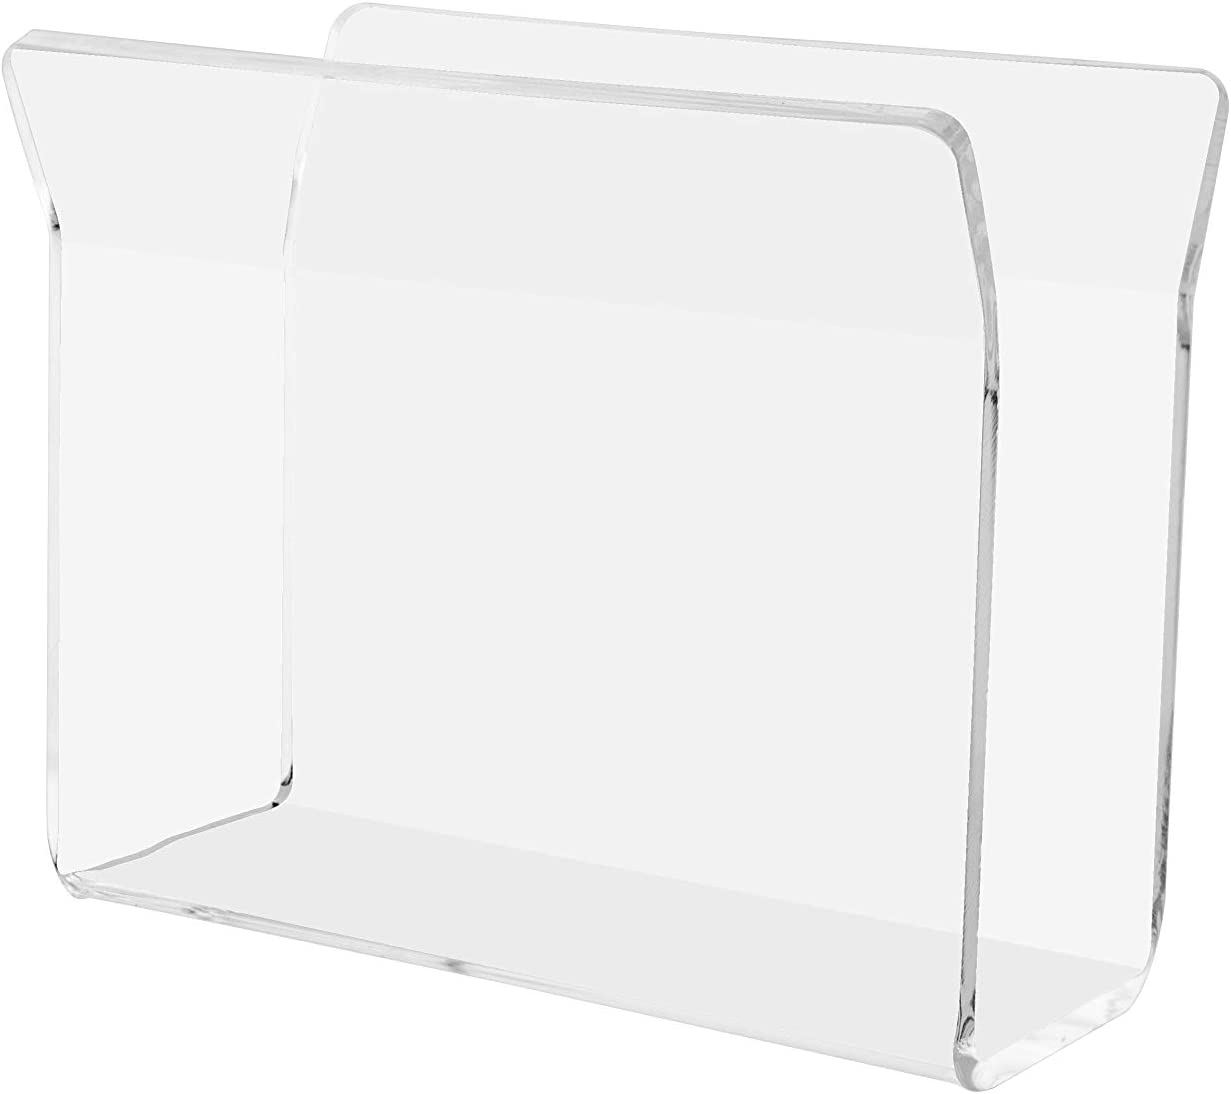 """Marketing Holders 5""""W Napkin Holder U-Shape Guest Bathroom Restaurant Diner Clear Acrylic Tabletop Stand Counter Top Kitchen Bar Organizer Space Saver Value Cloth Paper Upright"""